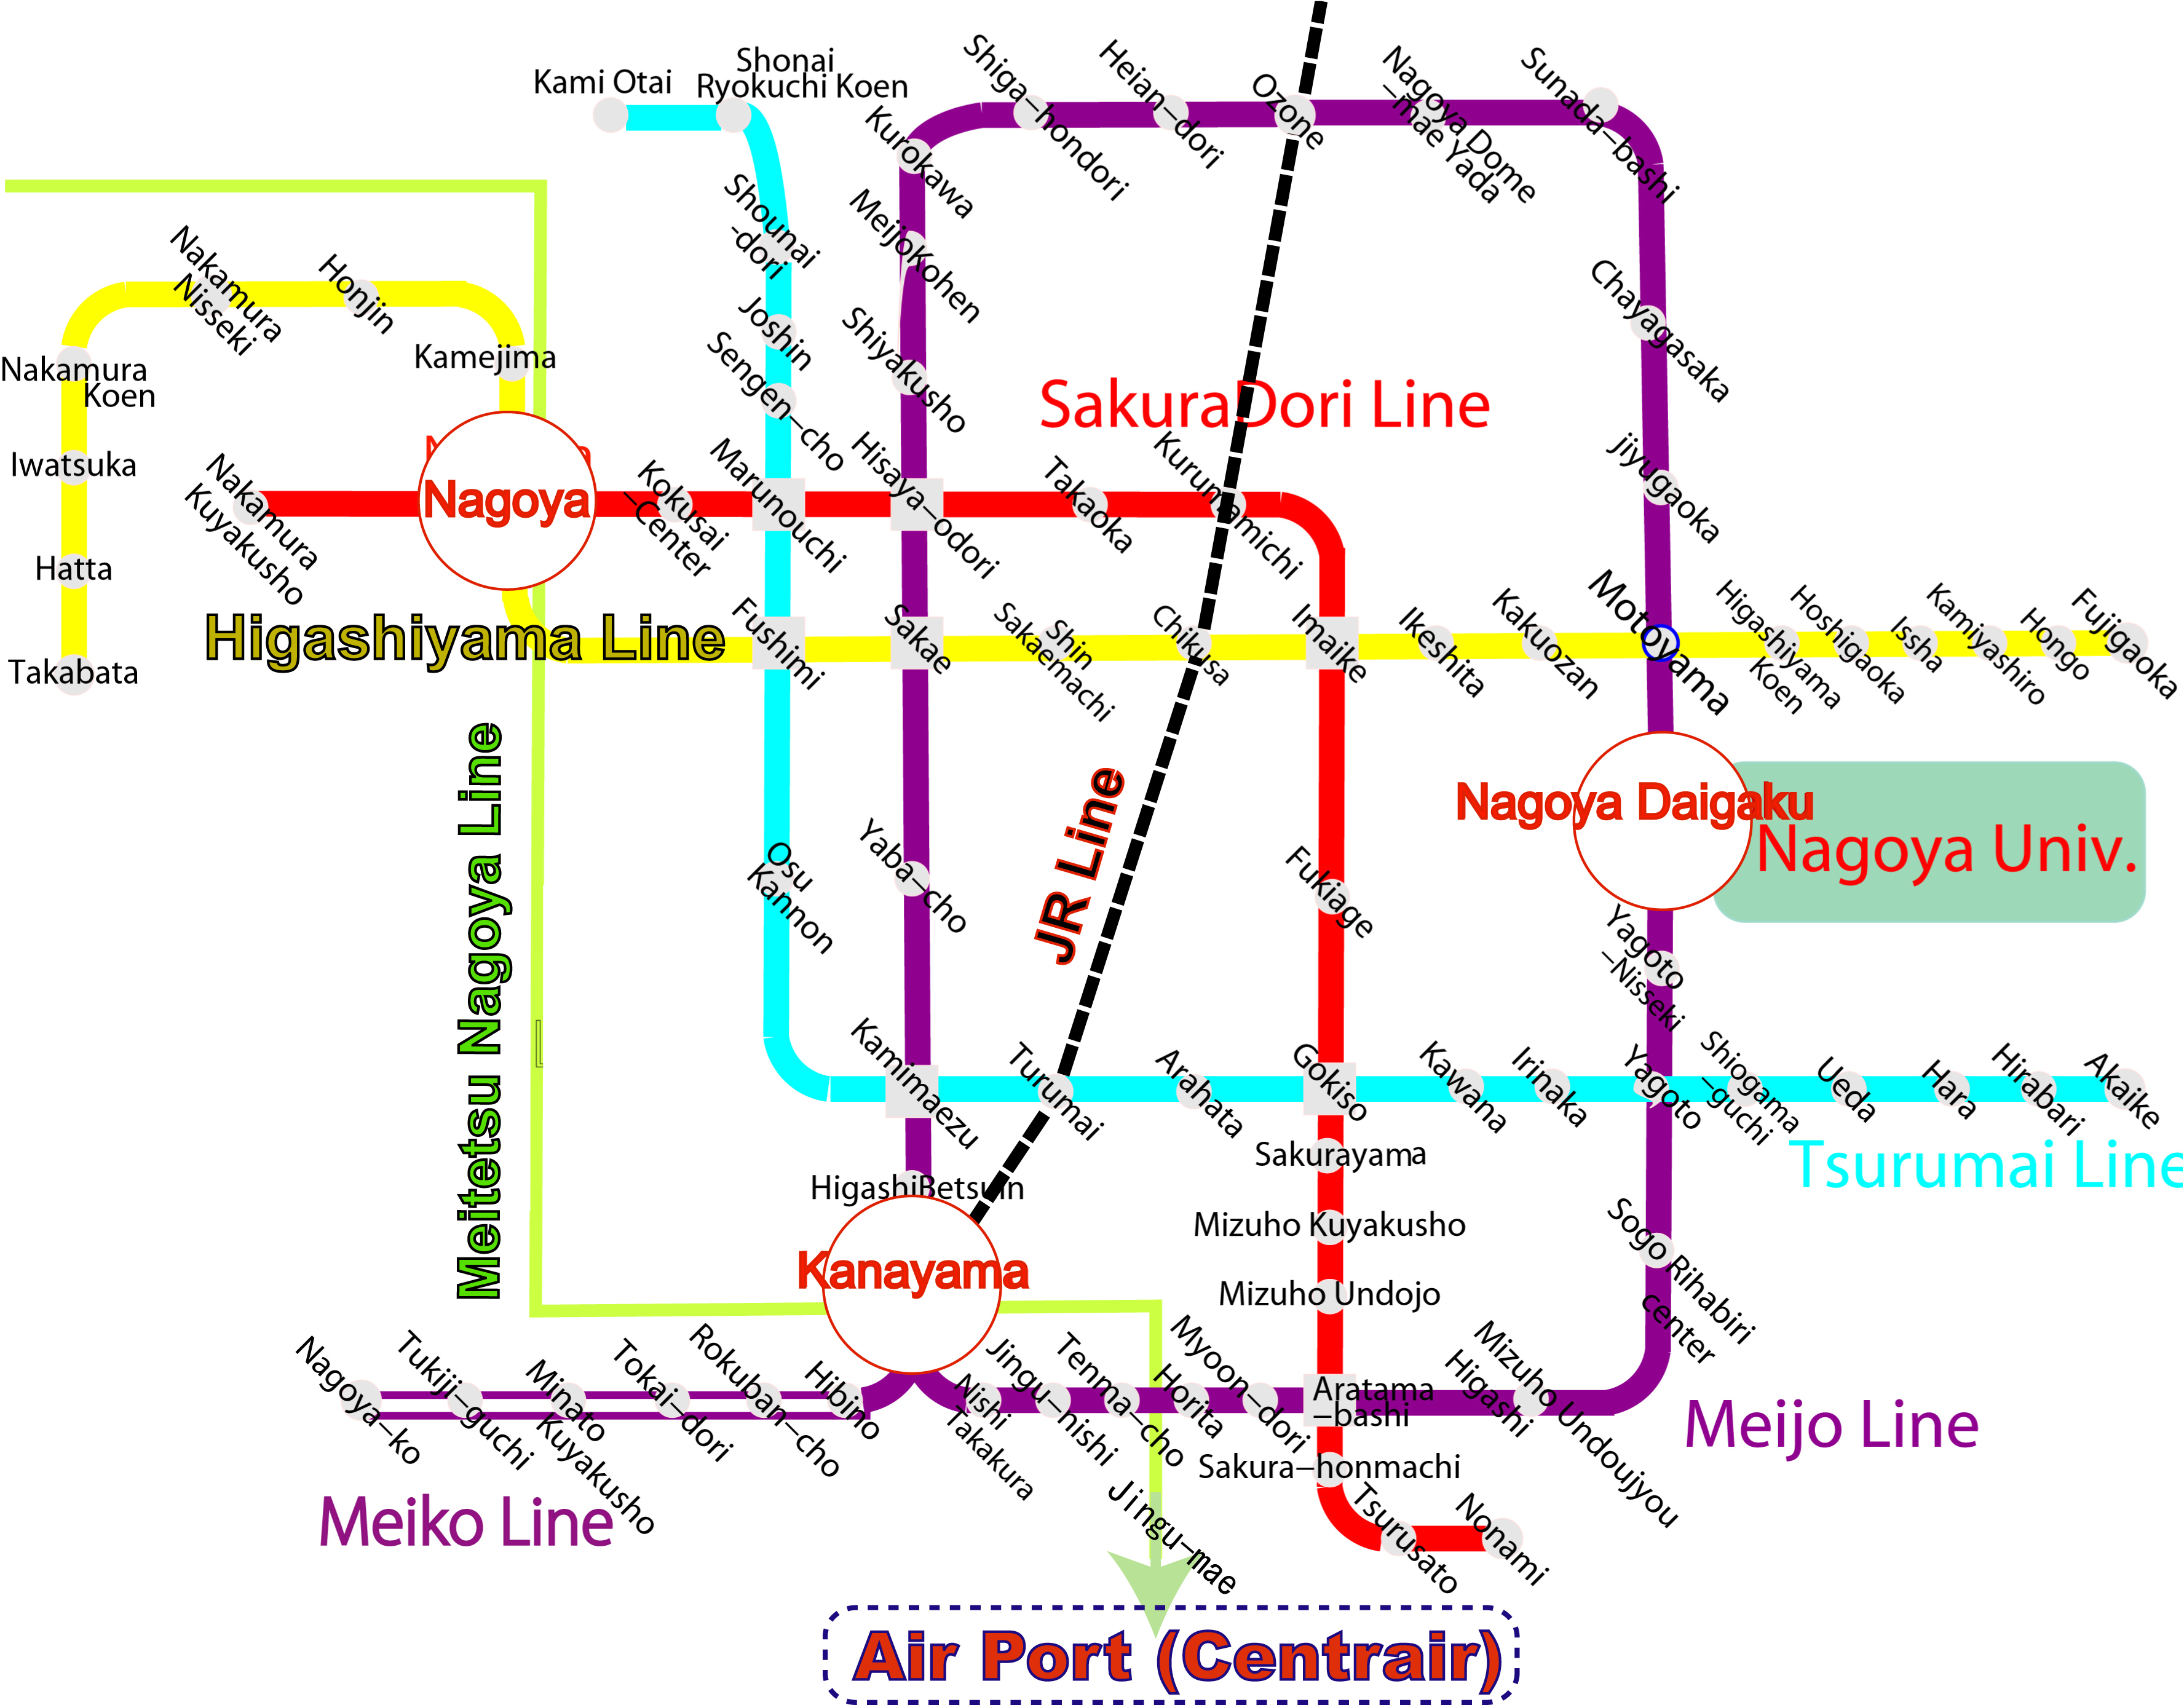 Japan Subway Map Nagoya Aichi Japan Mappery - Japan map nagoya